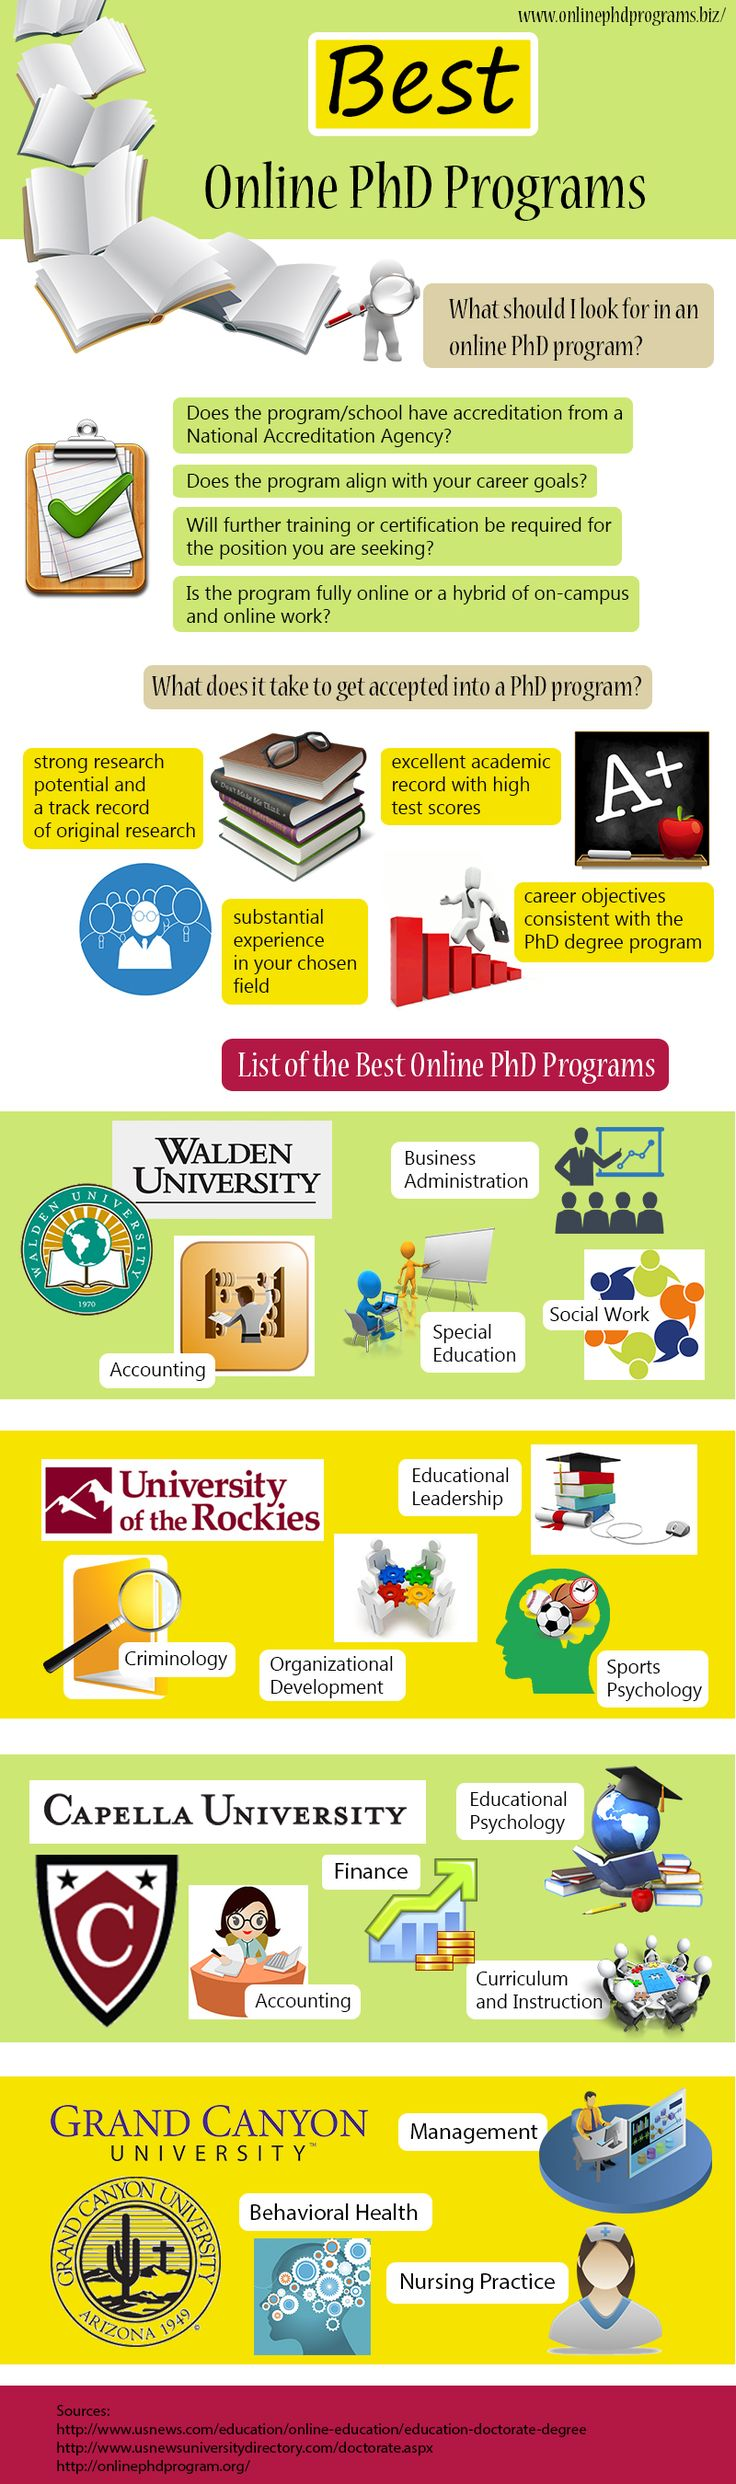 Best Online PhD Programs #infographic #Education